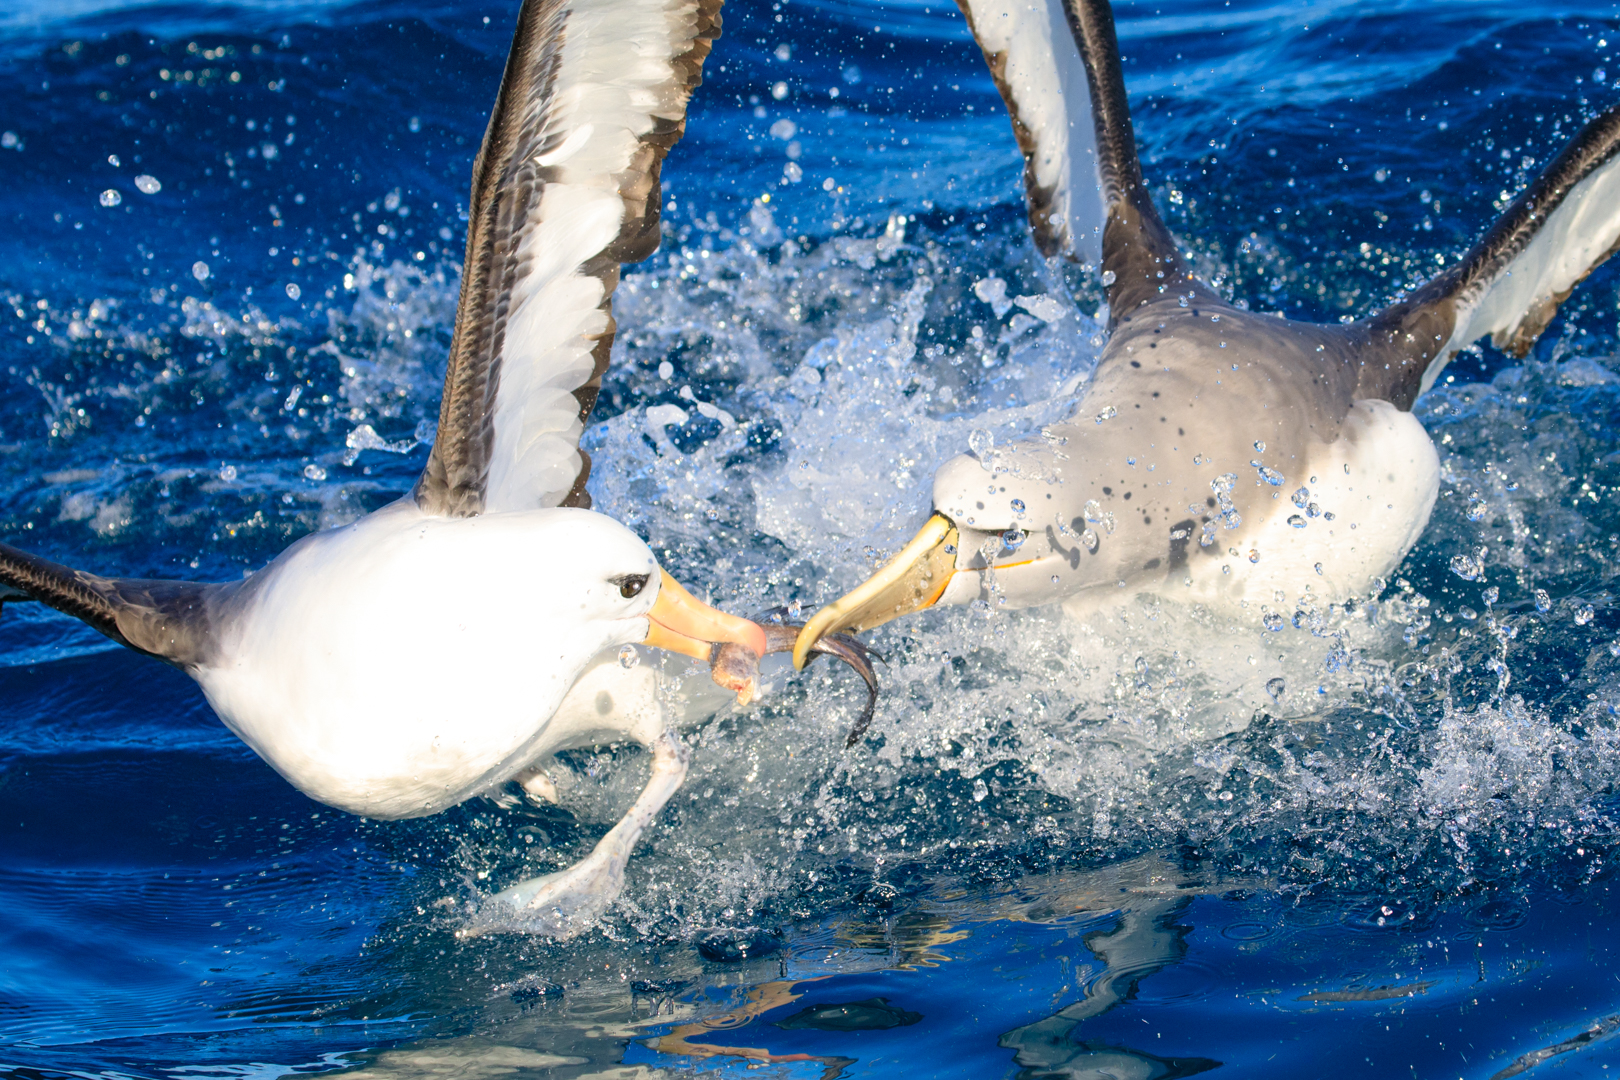 Can't beat an albatross food fight